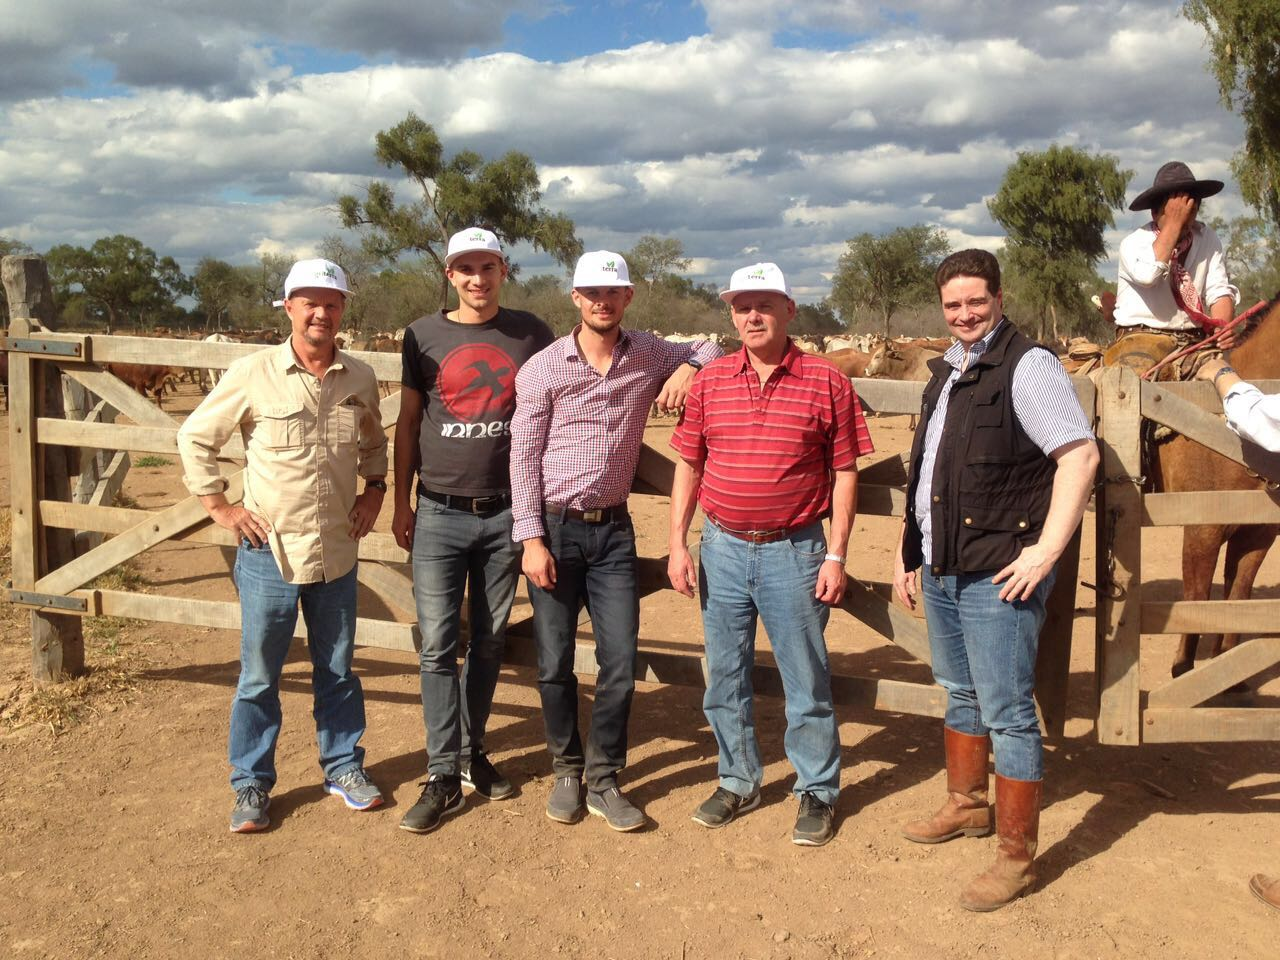 Paraguay cattle raising opportunity - visitors